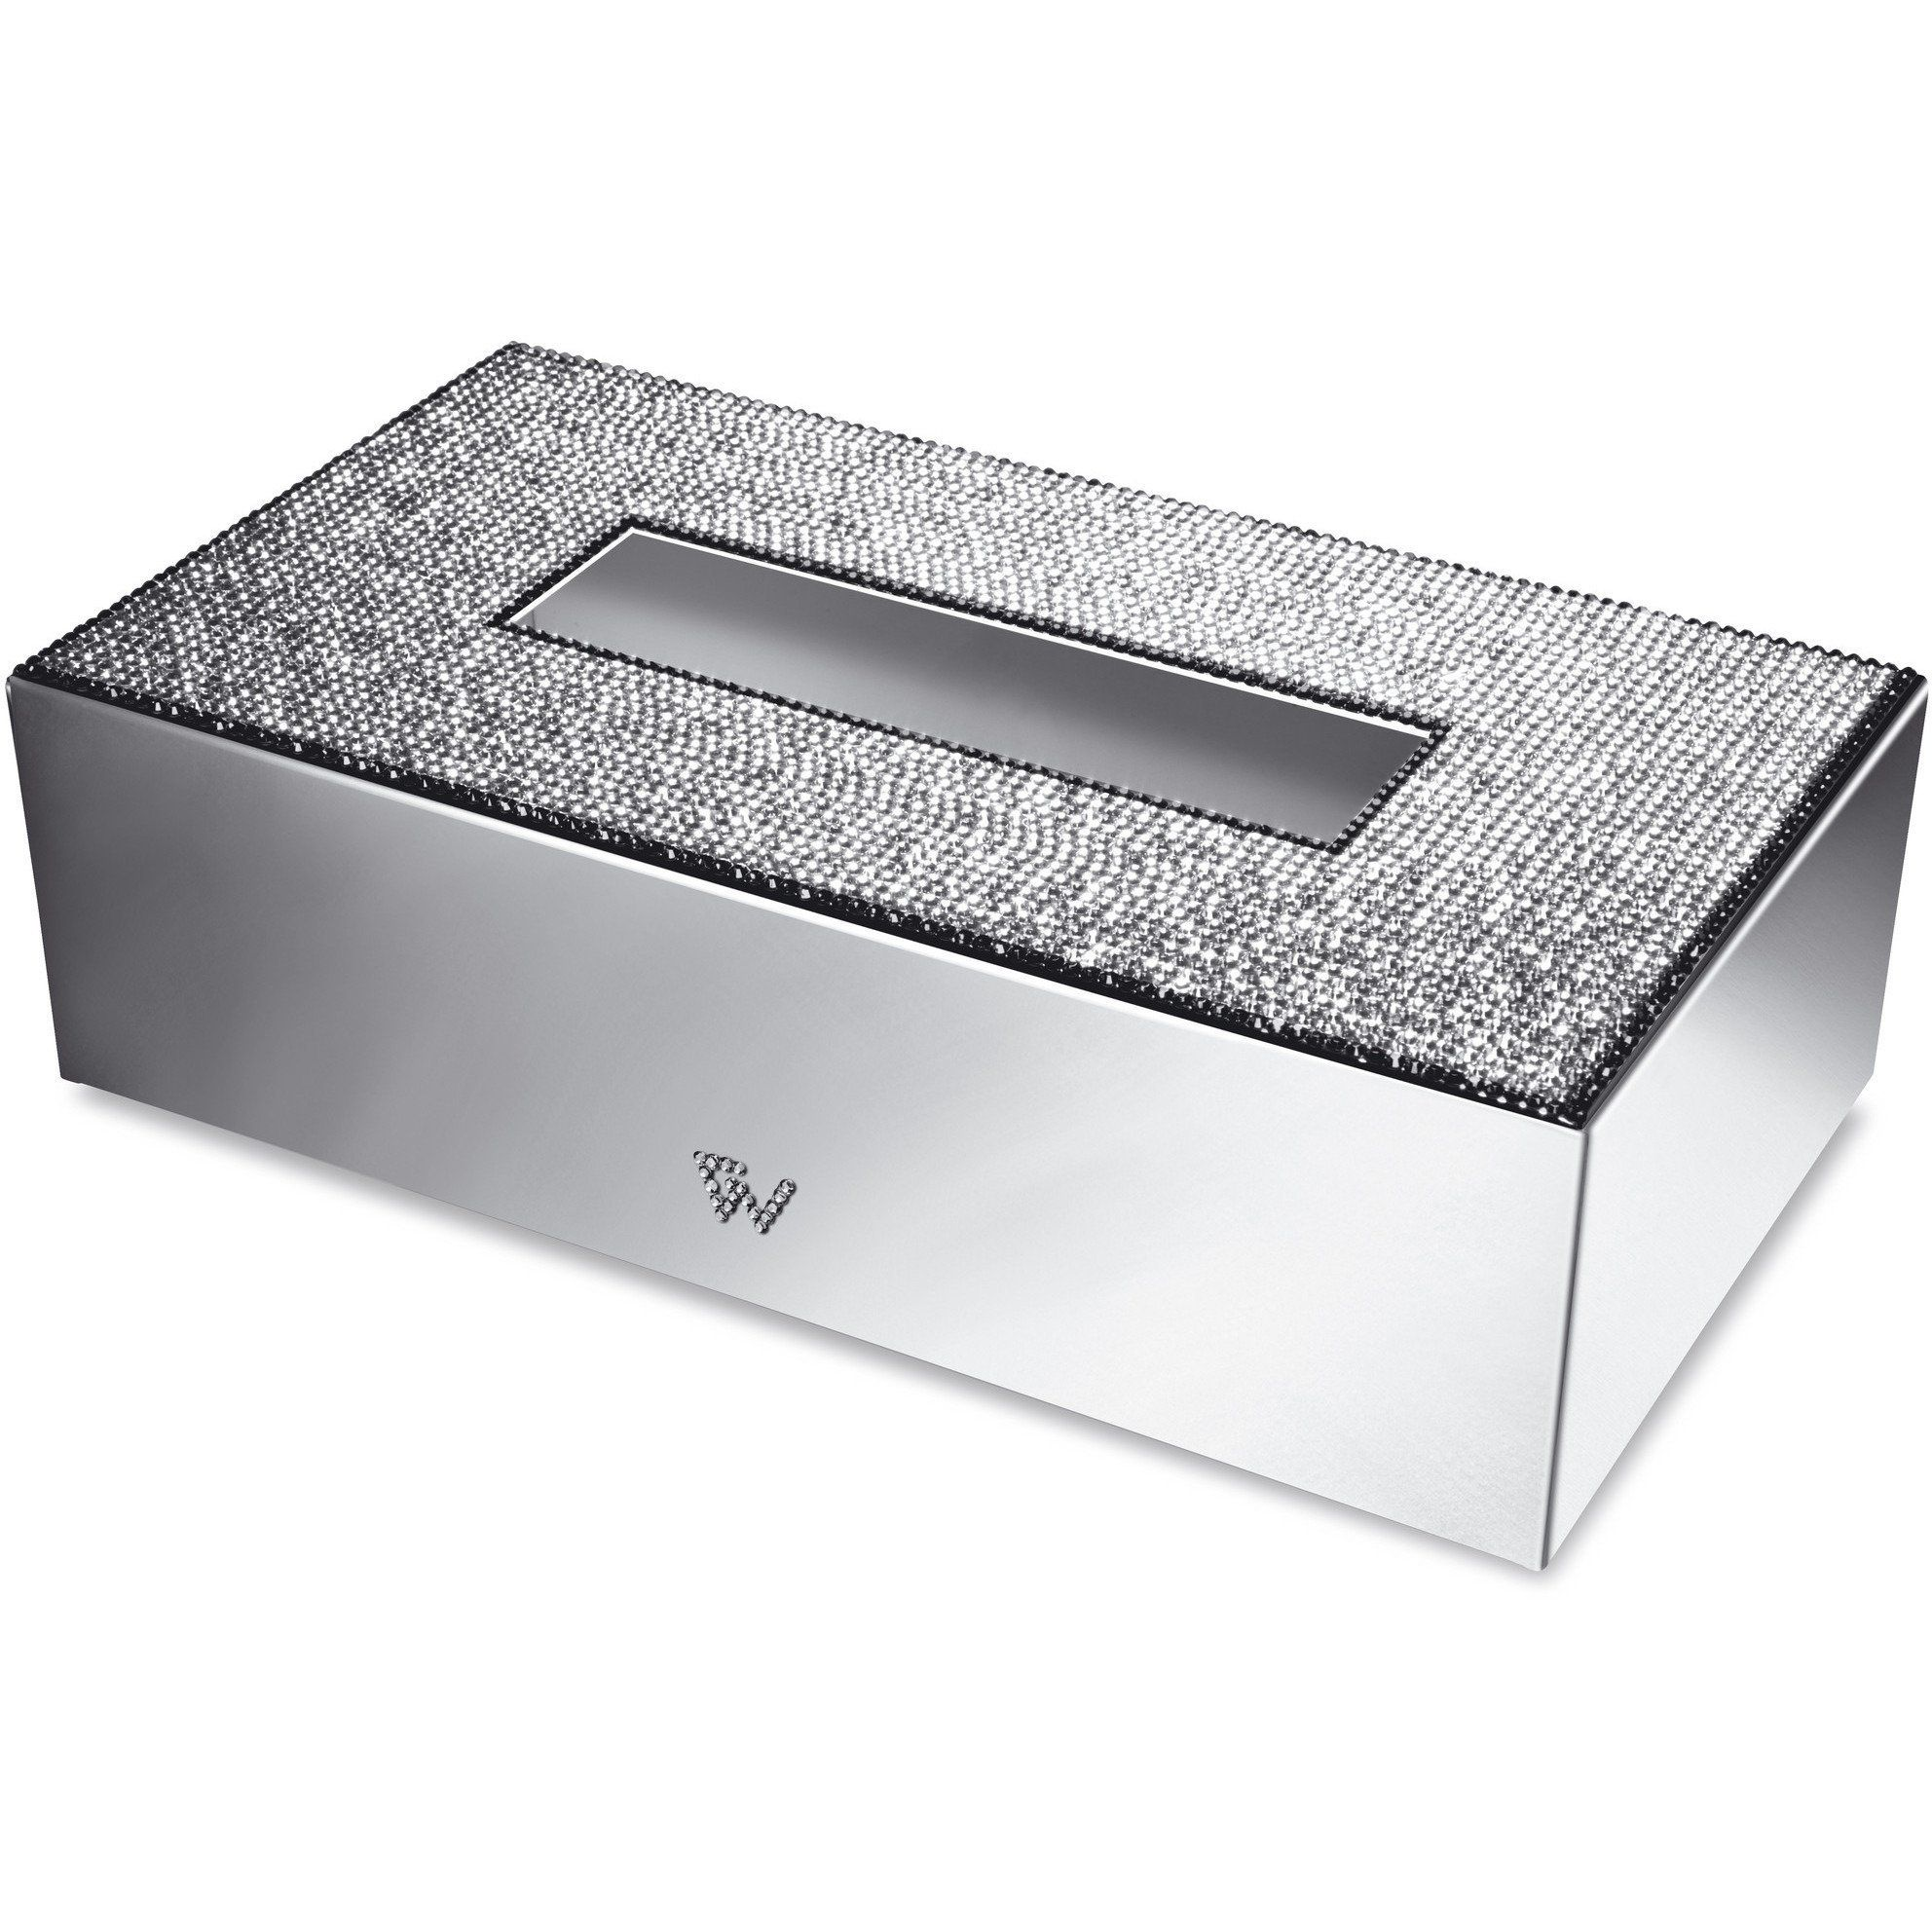 Starlight Rectangular Tissue Box Cover W Swarovski Crystals Available In Chrome Or Gold Made Of Br With Crystal Elements Inlaid At The Top